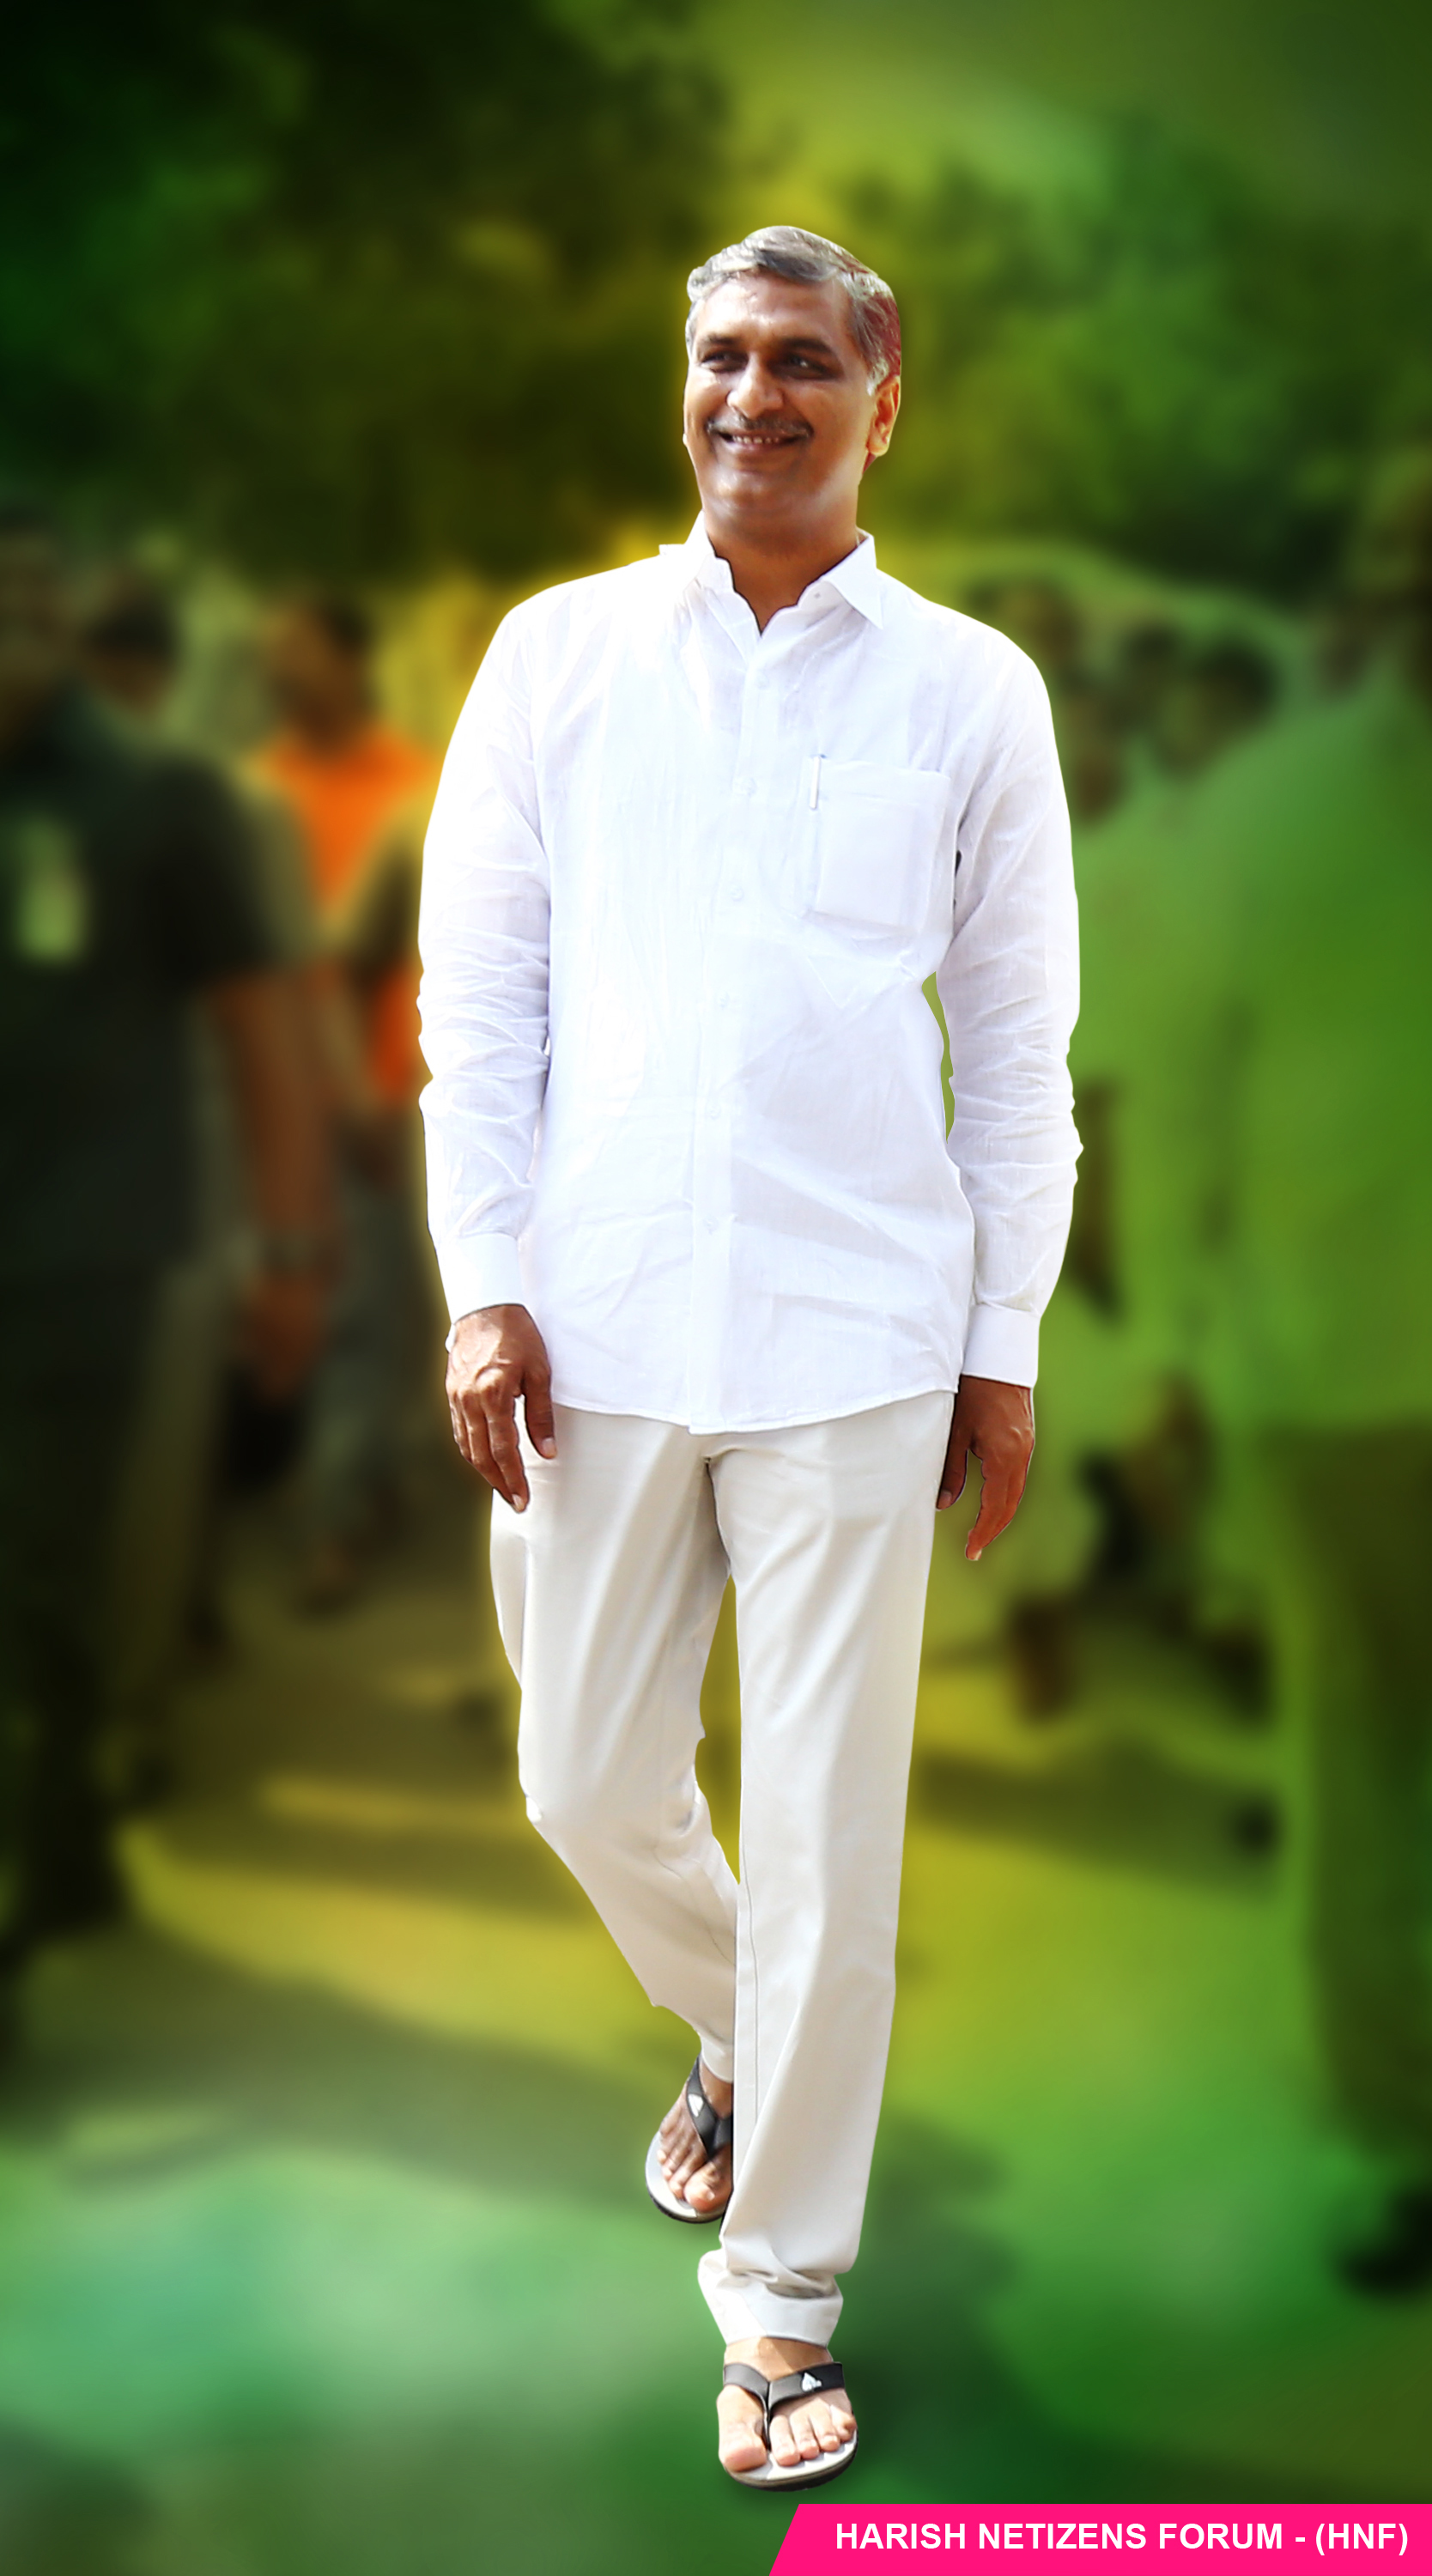 File:Harish Rao Minister jpg - Wikimedia Commons